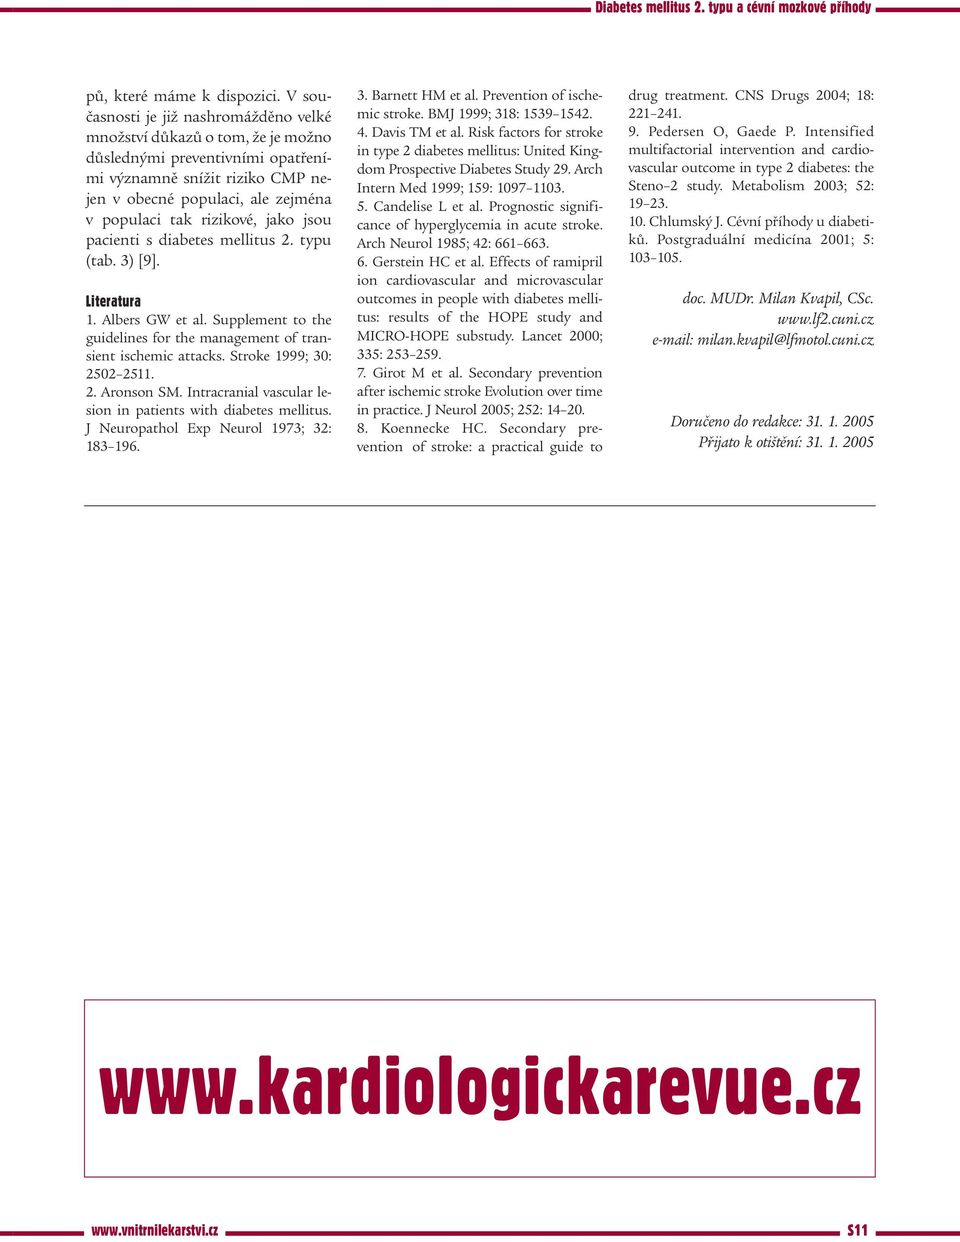 rizikové, jako jsou pacienti s diabetes mellitus 2. typu (tab. 3) [9]. Literatura 1. Albers GW et al. Supplement to the guidelines for the management of transient ischemic attacks.